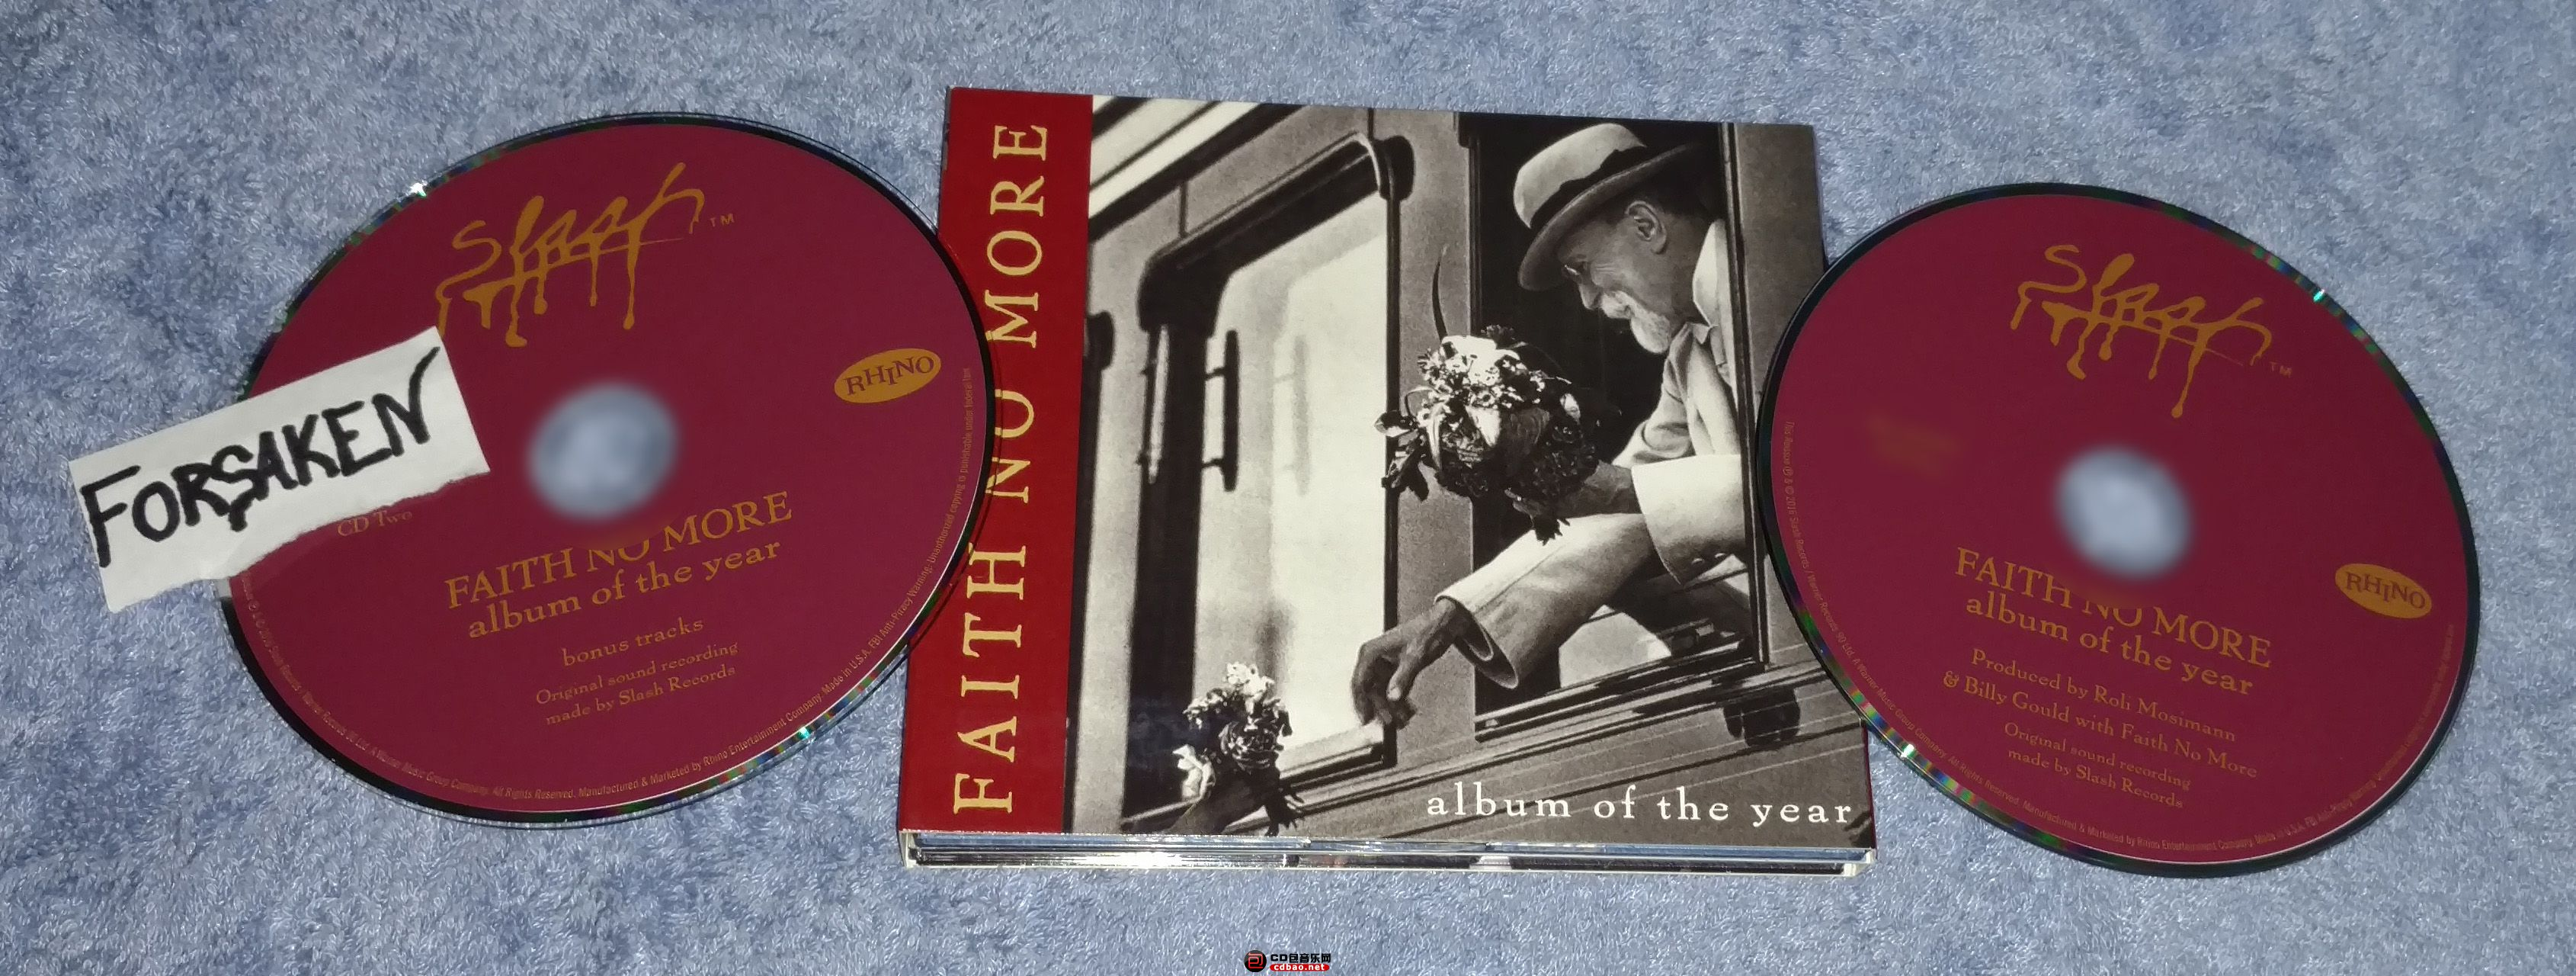 000-faith_no_more-album_of_the_year-deluxe_edition_remastered-2cd-flac-2016-cove.jpg